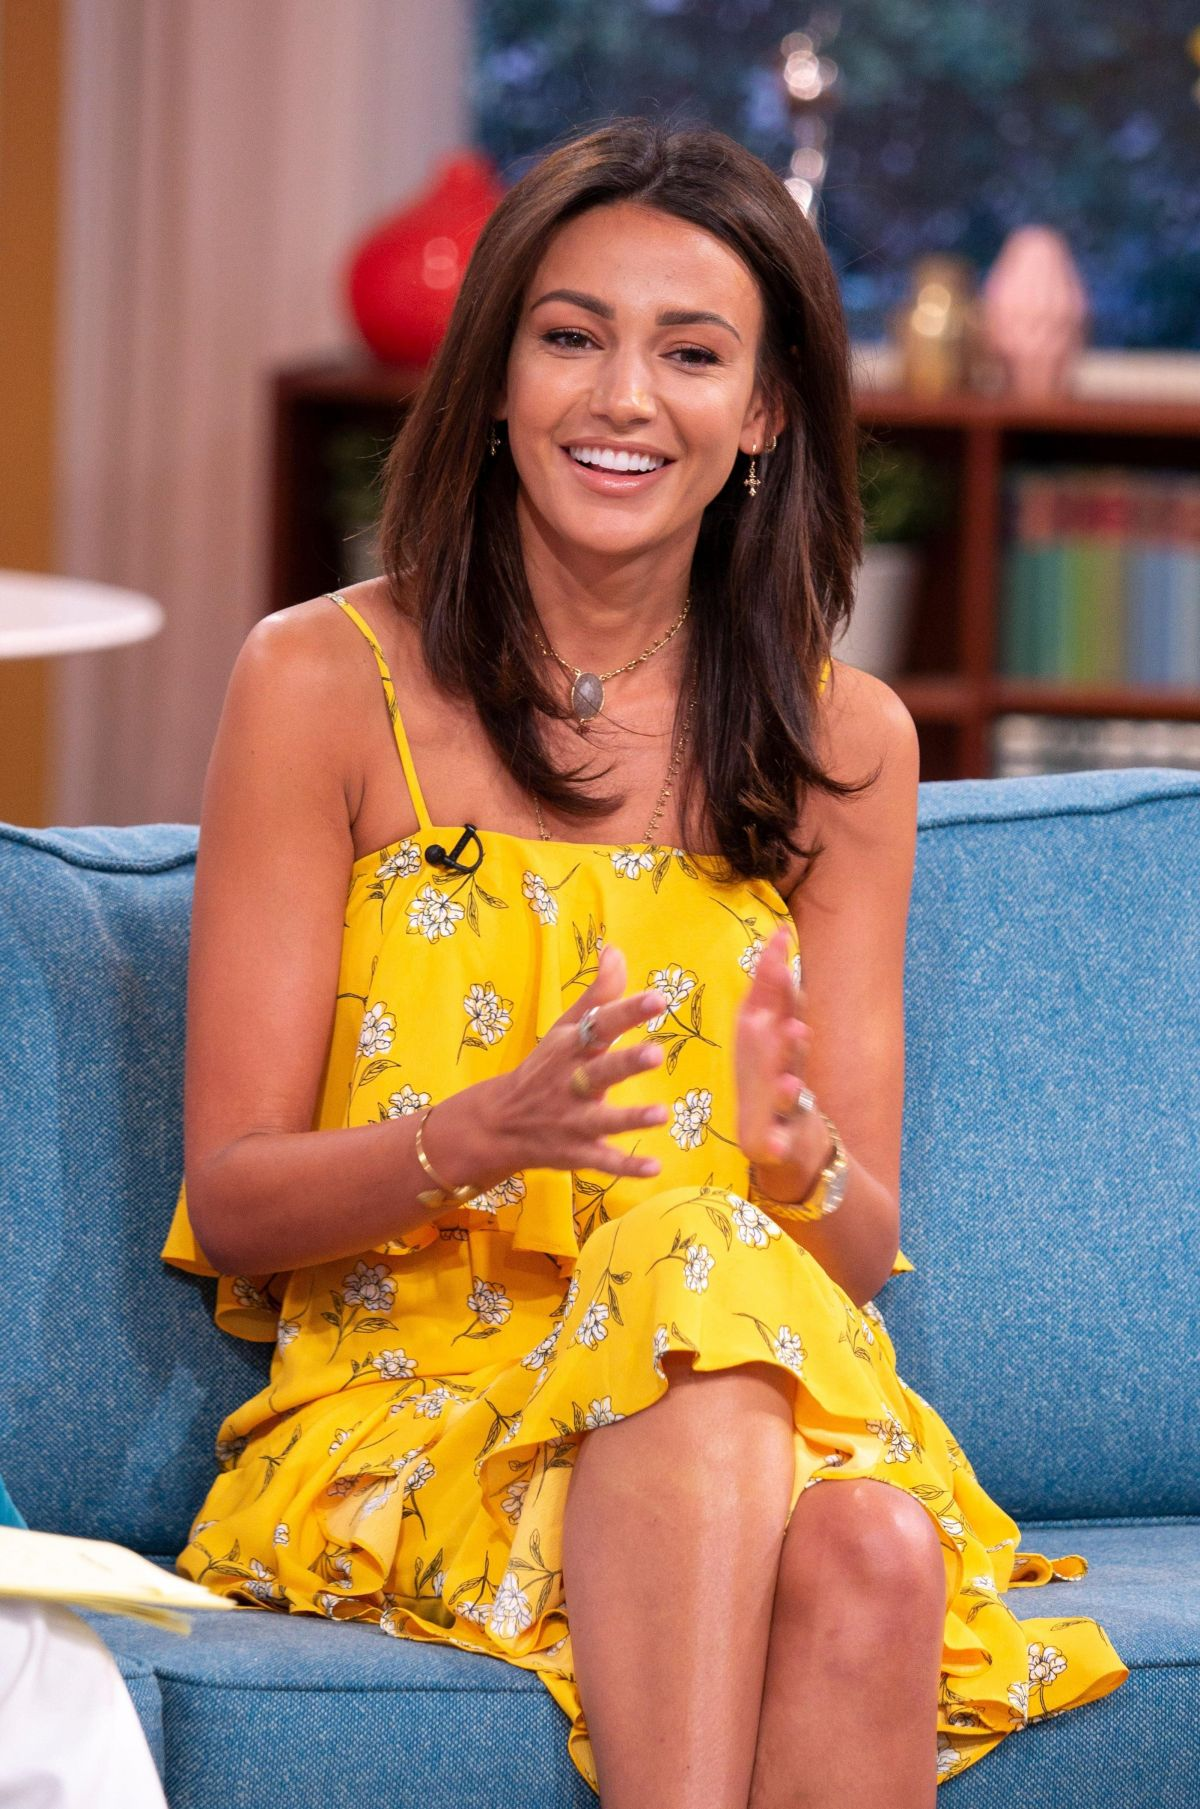 MICHELLE KEEGAN at This Morning TV Show in London 06/05 ...